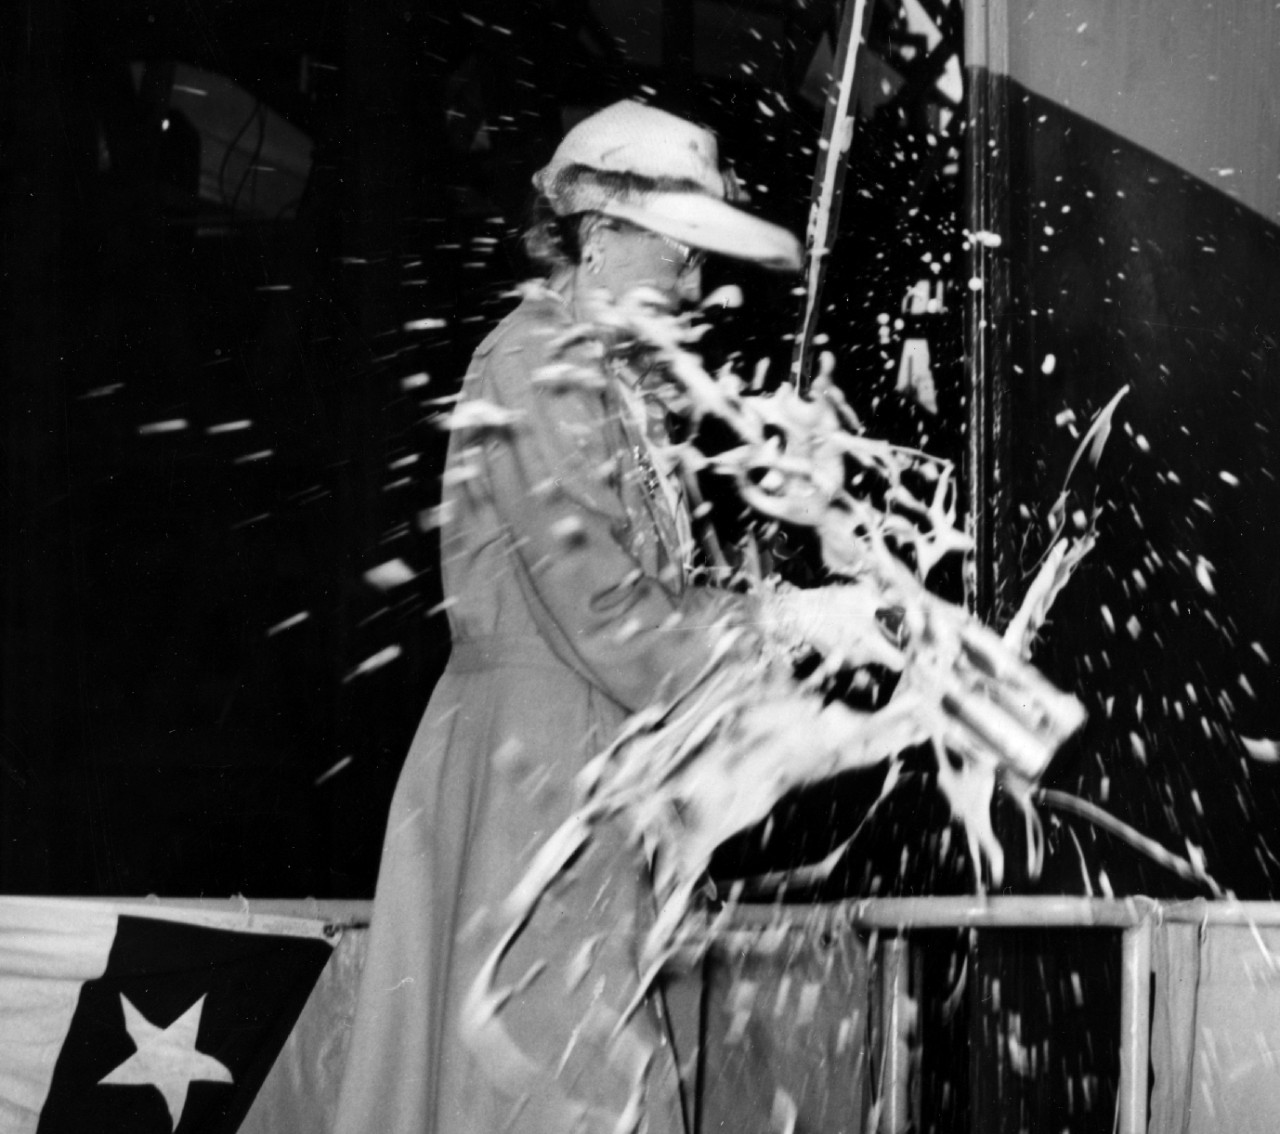 Coxswain Morrison's daughter christens the destroyer named for her father on Independence Day 1944. (U.S. Navy Photograph 80-G-77842, National Archives and Records Administration, Still Pictures Division, College Park, Md.)